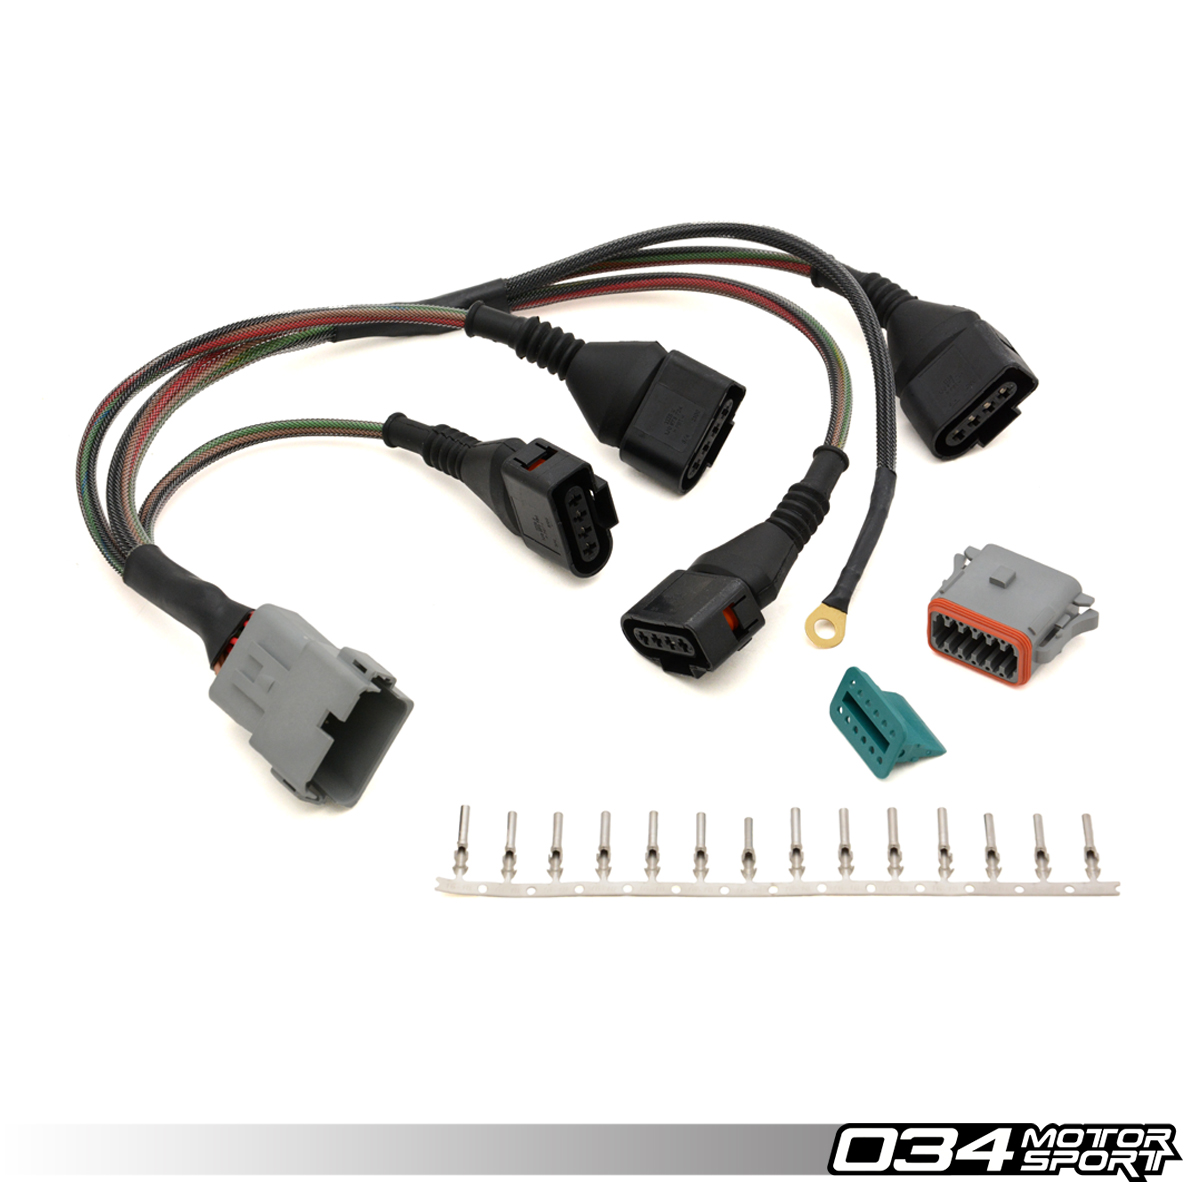 Vw Engine Wiring Harness Opinions About Diagram Trke For Hd Repair Update Audi Volkswagen 1 8t With 4 Wire Coils 034 Rh Store 034motorsport Com Tdi Jetta